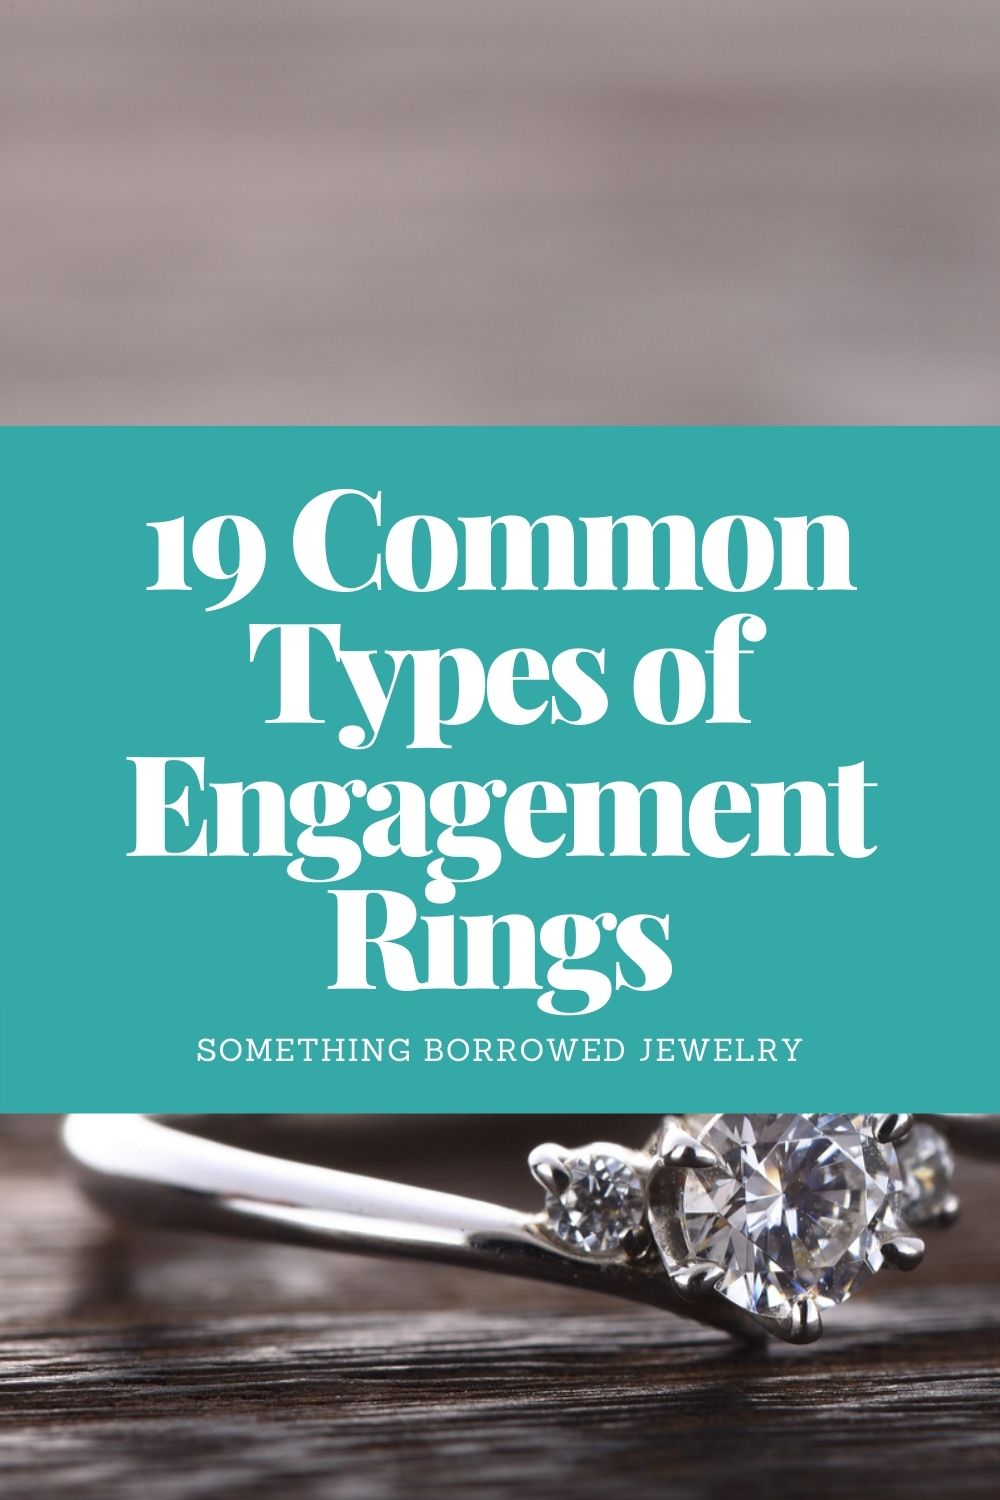 19 Common Types of Engagement Rings pin 2